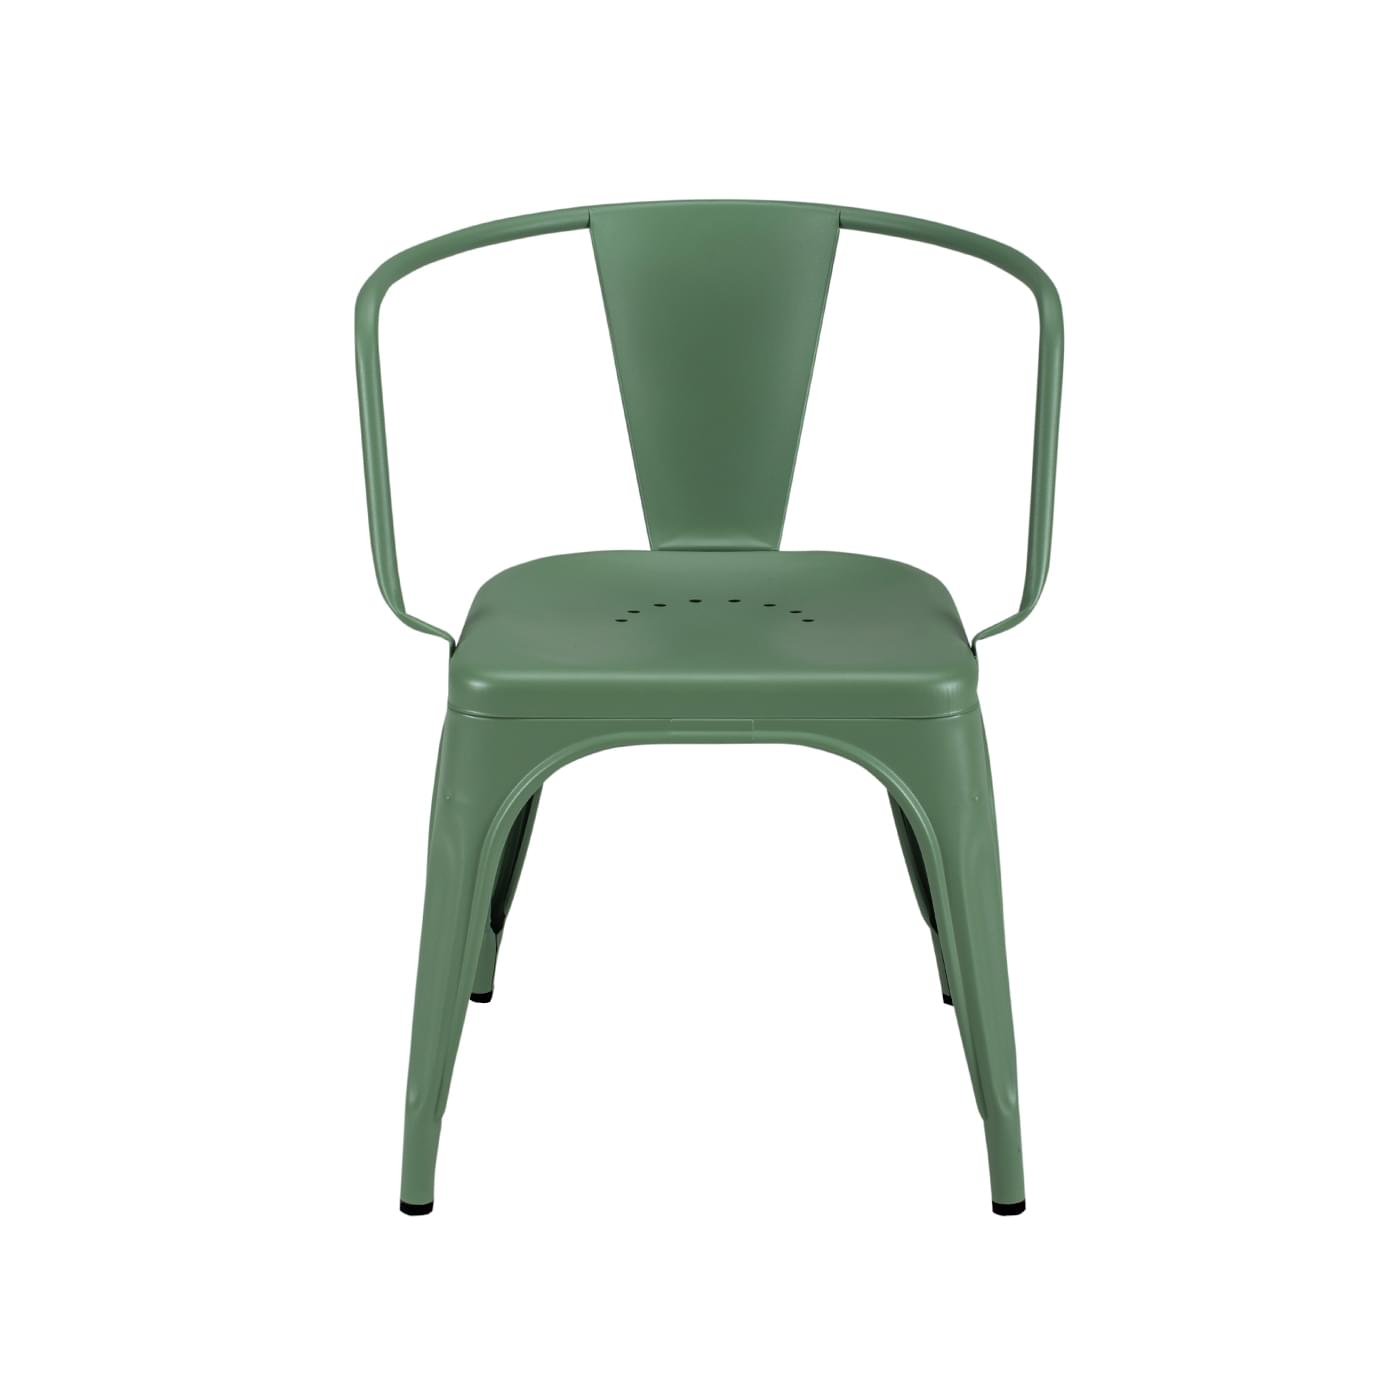 Ac16 Armchair By Tolix Fauteuil Ac16 Tolix Products